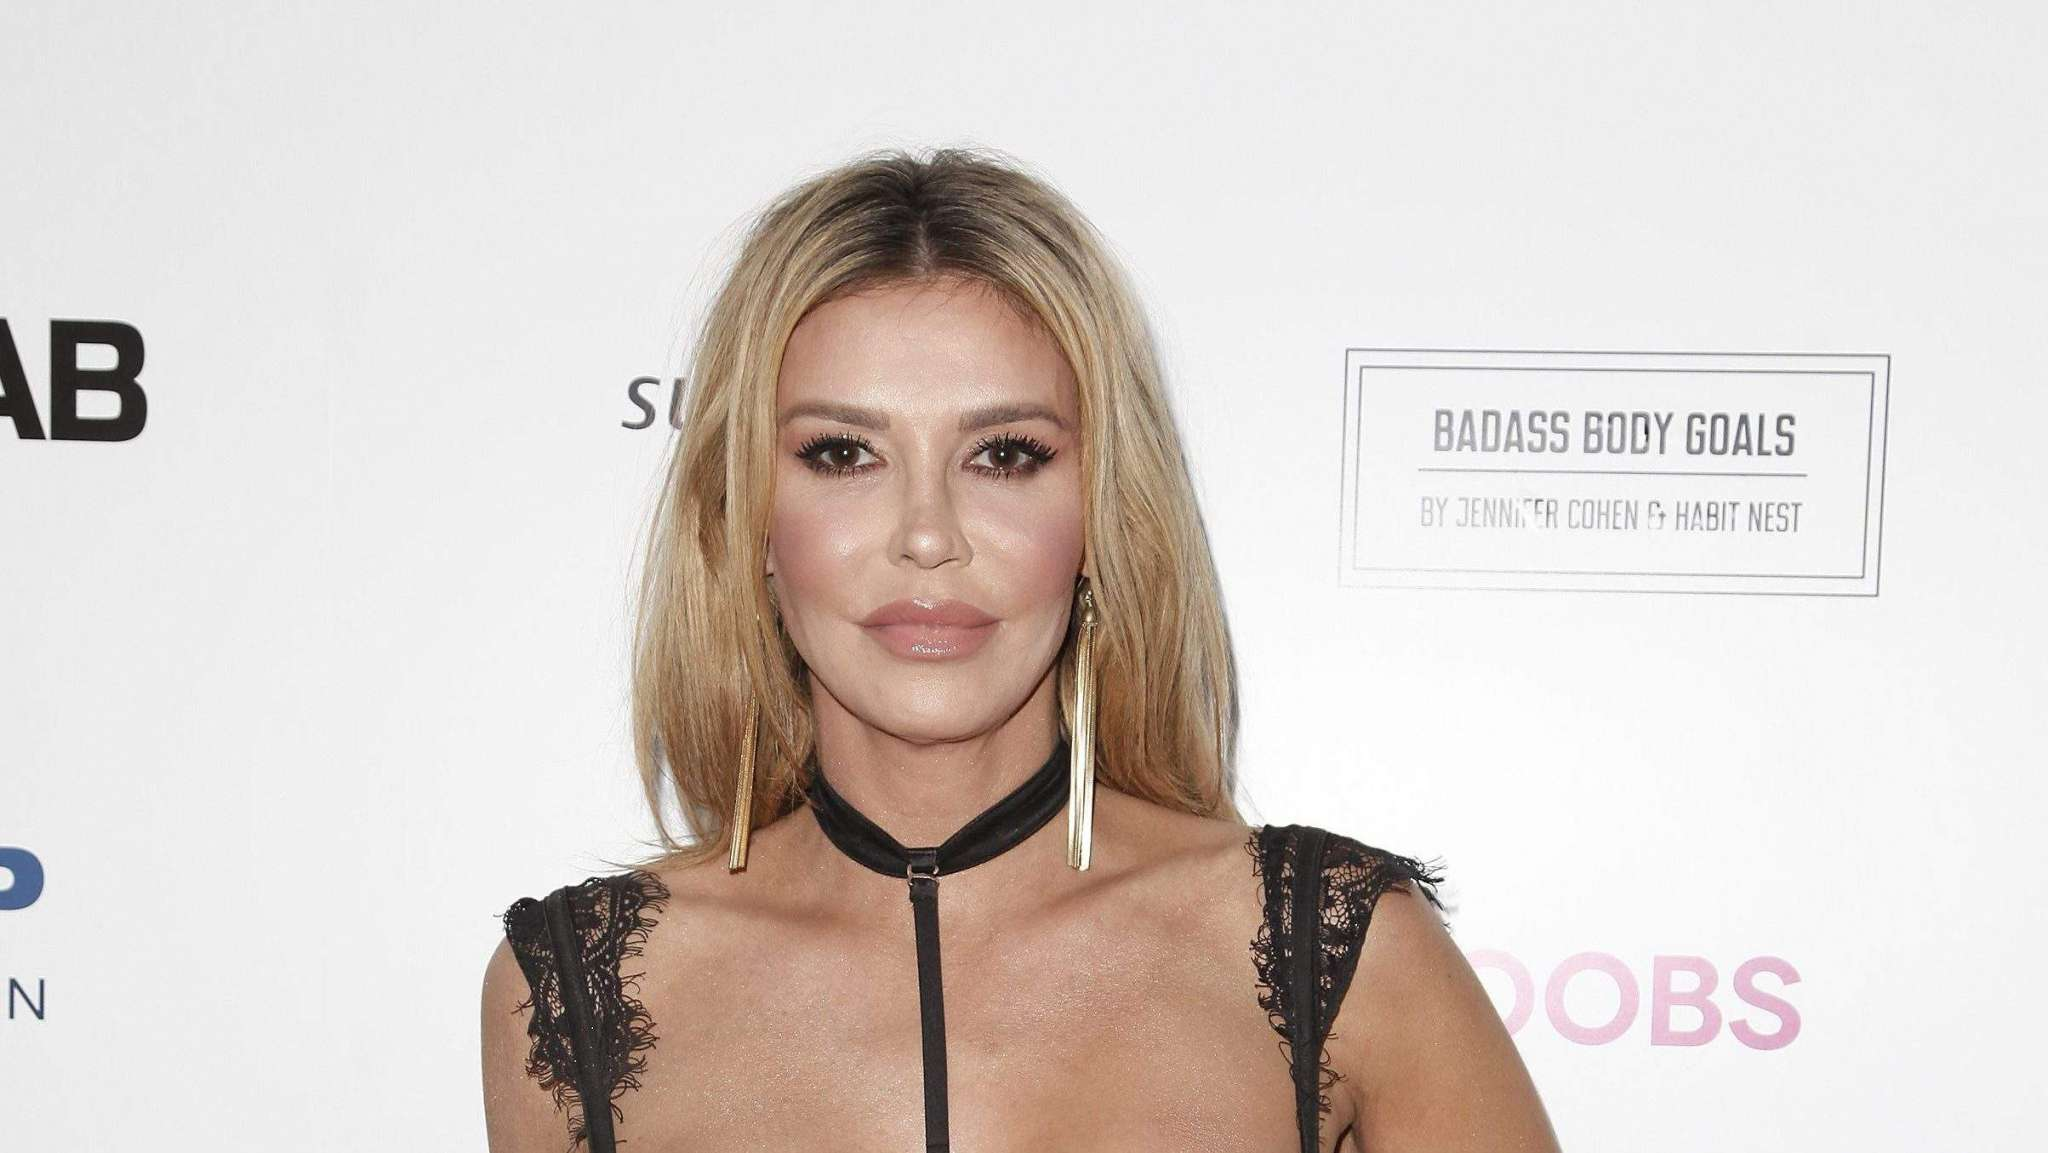 Brandi Glanville Posts Shocking Picture Of Her Burned Face In Response To Plastic Surgery Rumors – Here's What Actually Happened To Her!